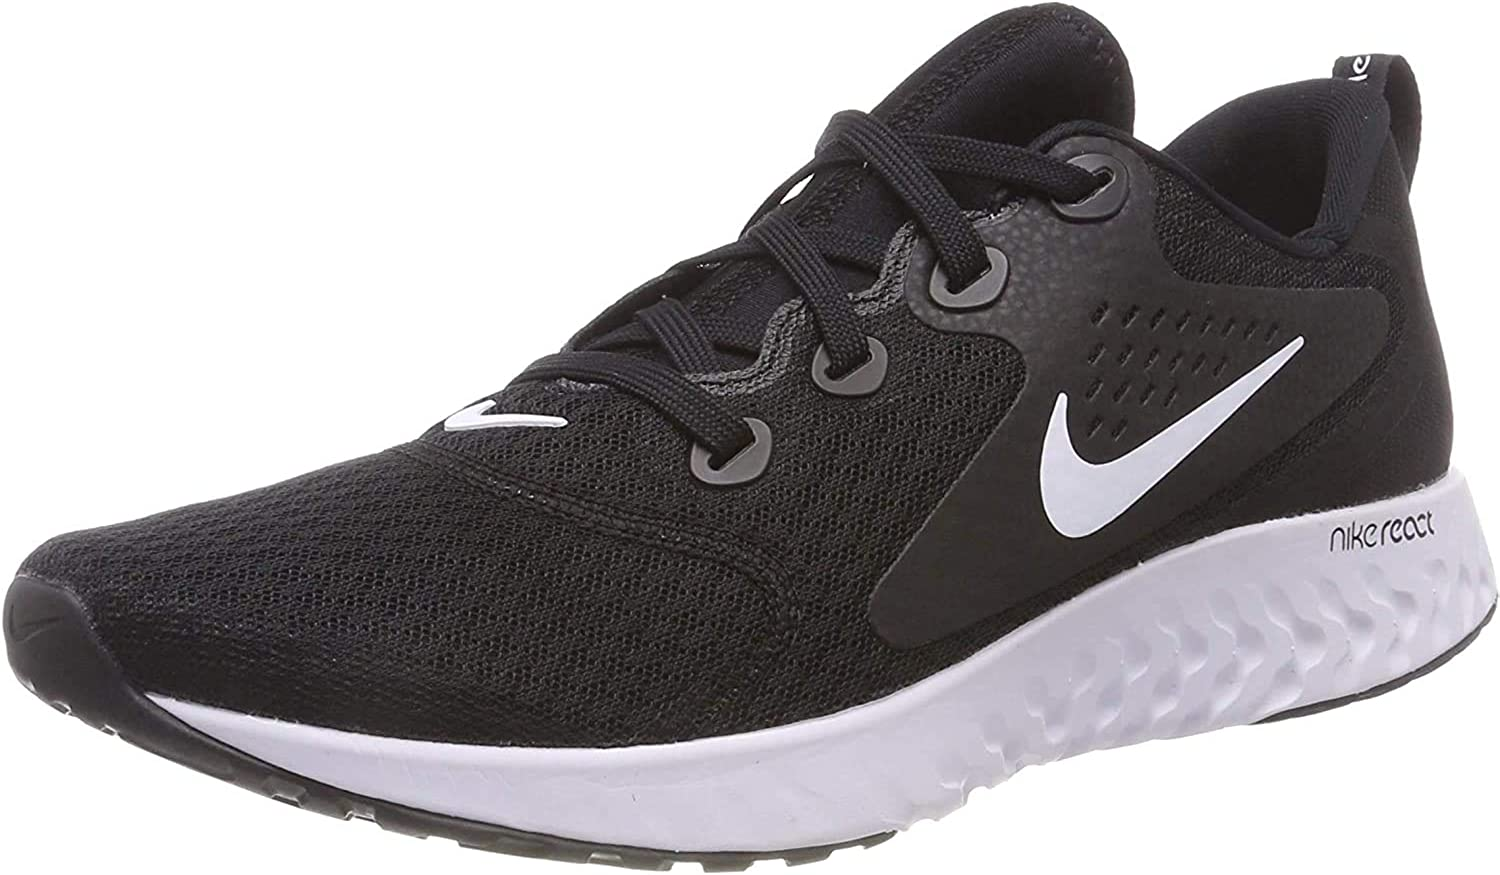 Nike Men's Legend React Fitness Shoes Black (Black/White 001)